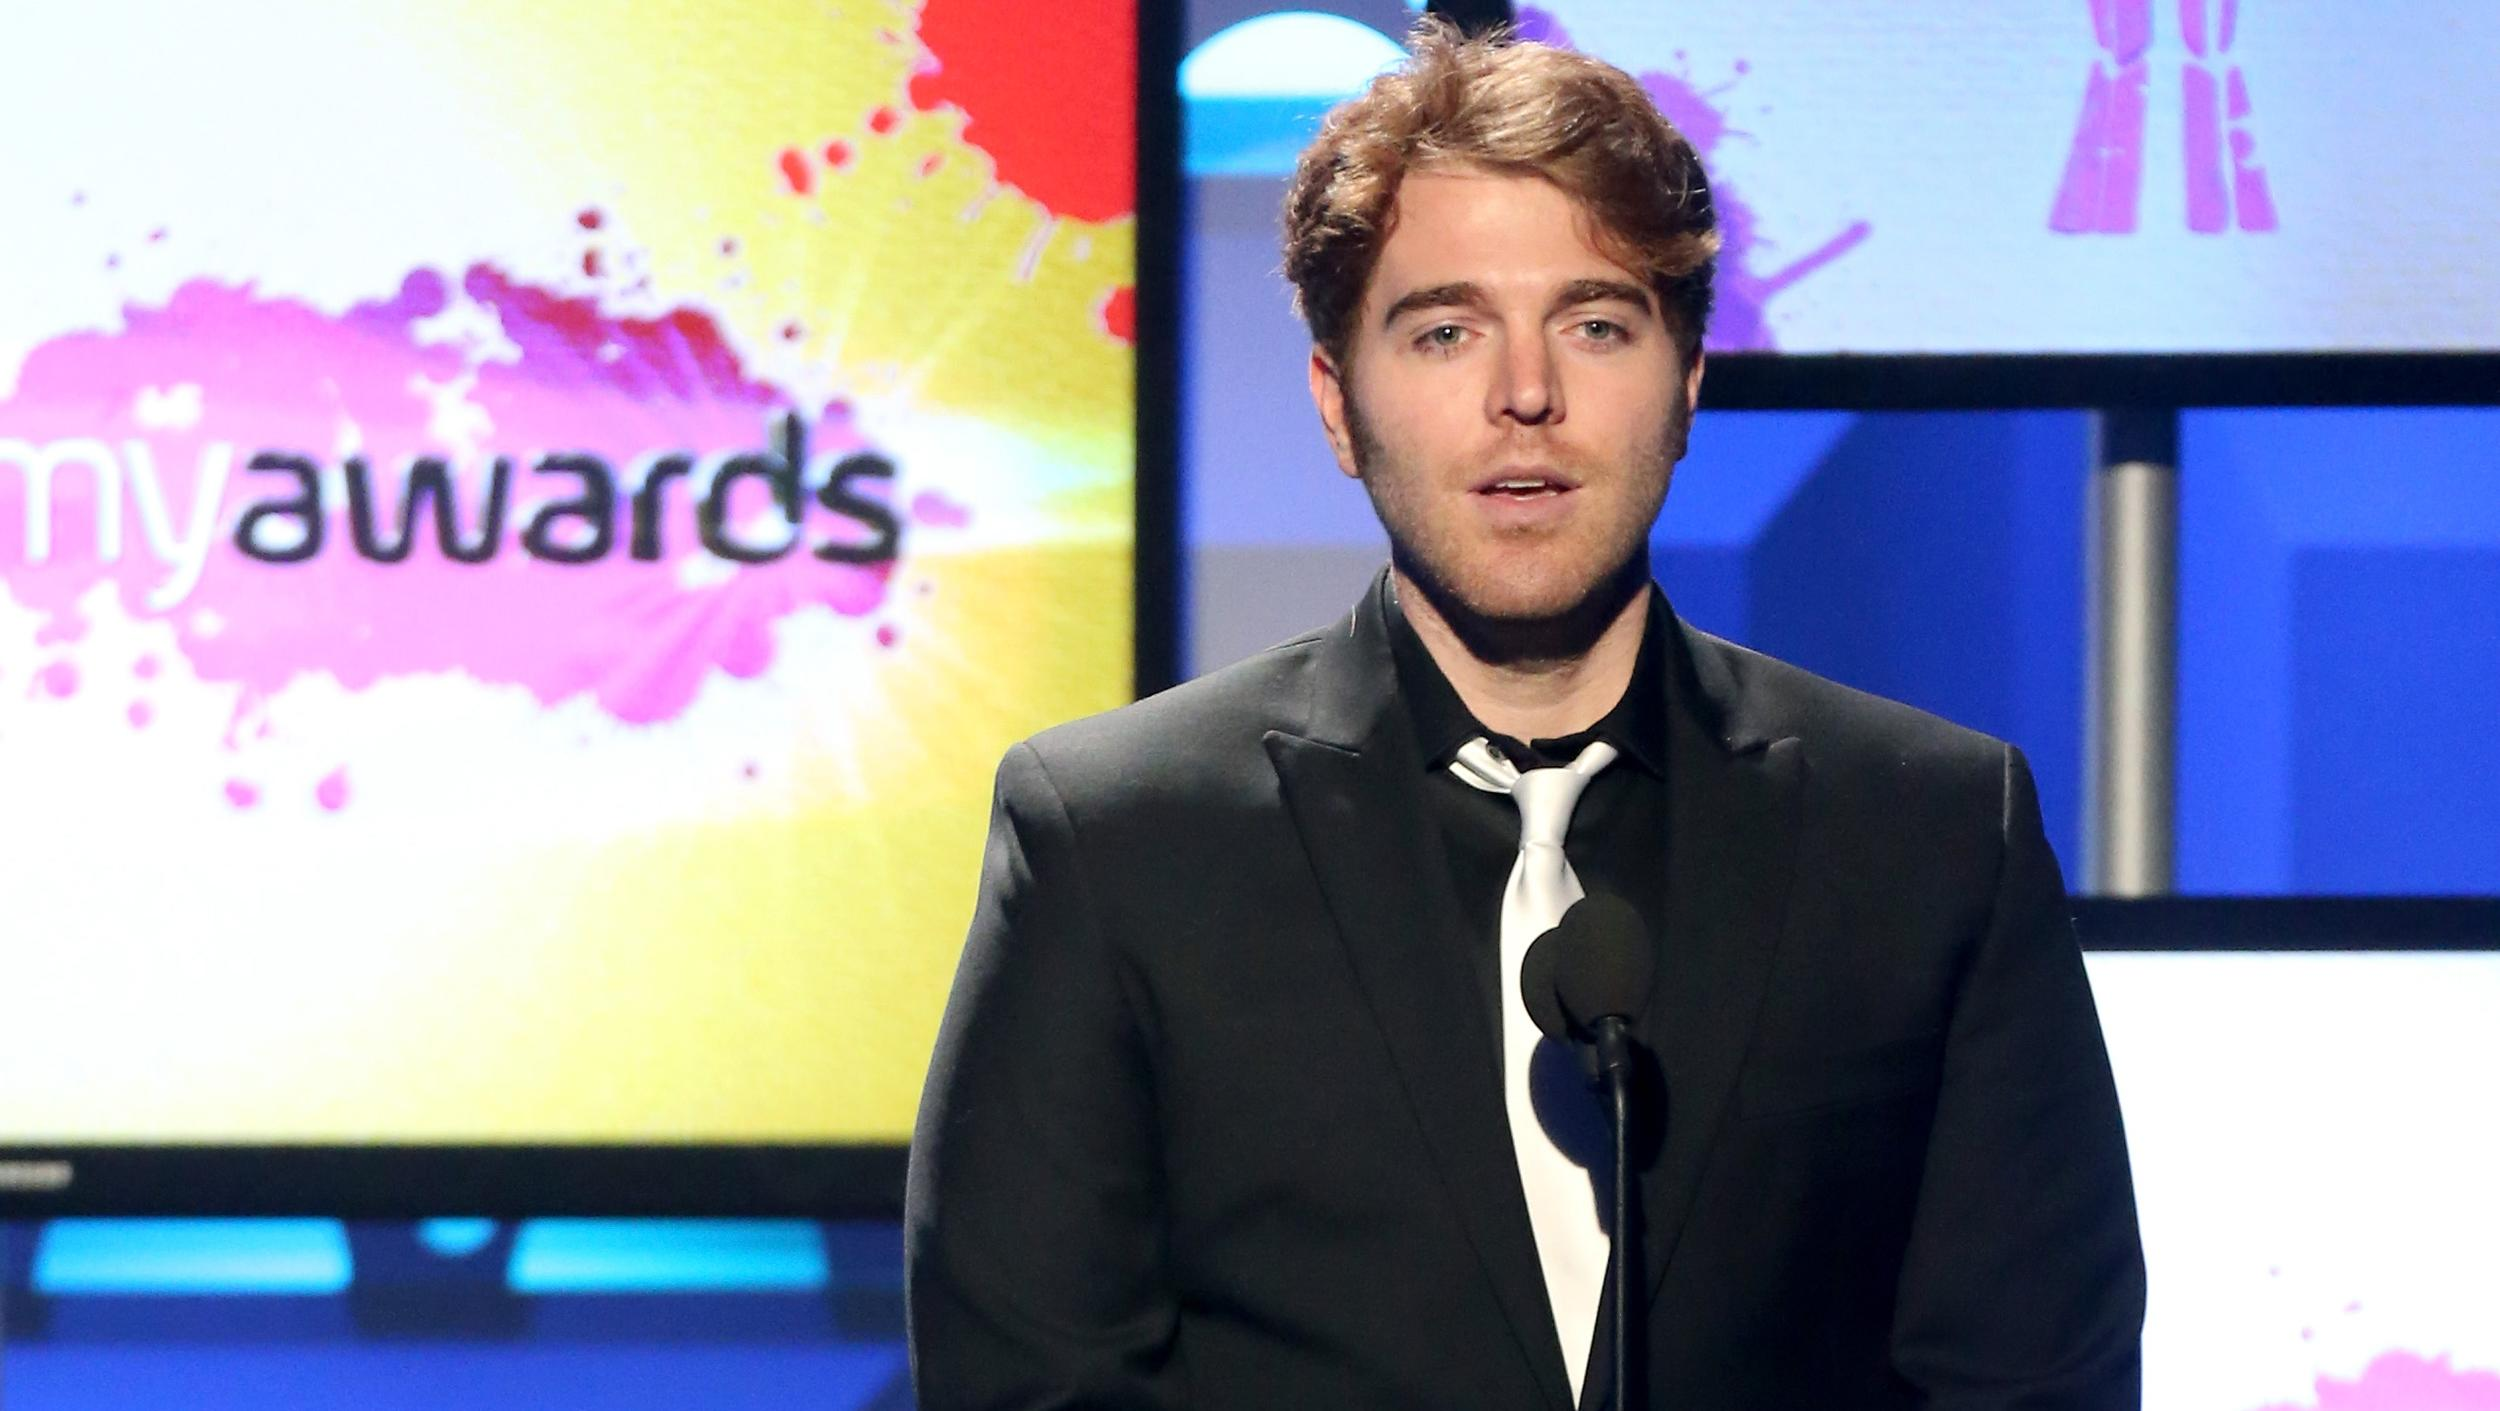 Shane Dawson addresses past YouTube videos after racism accusations